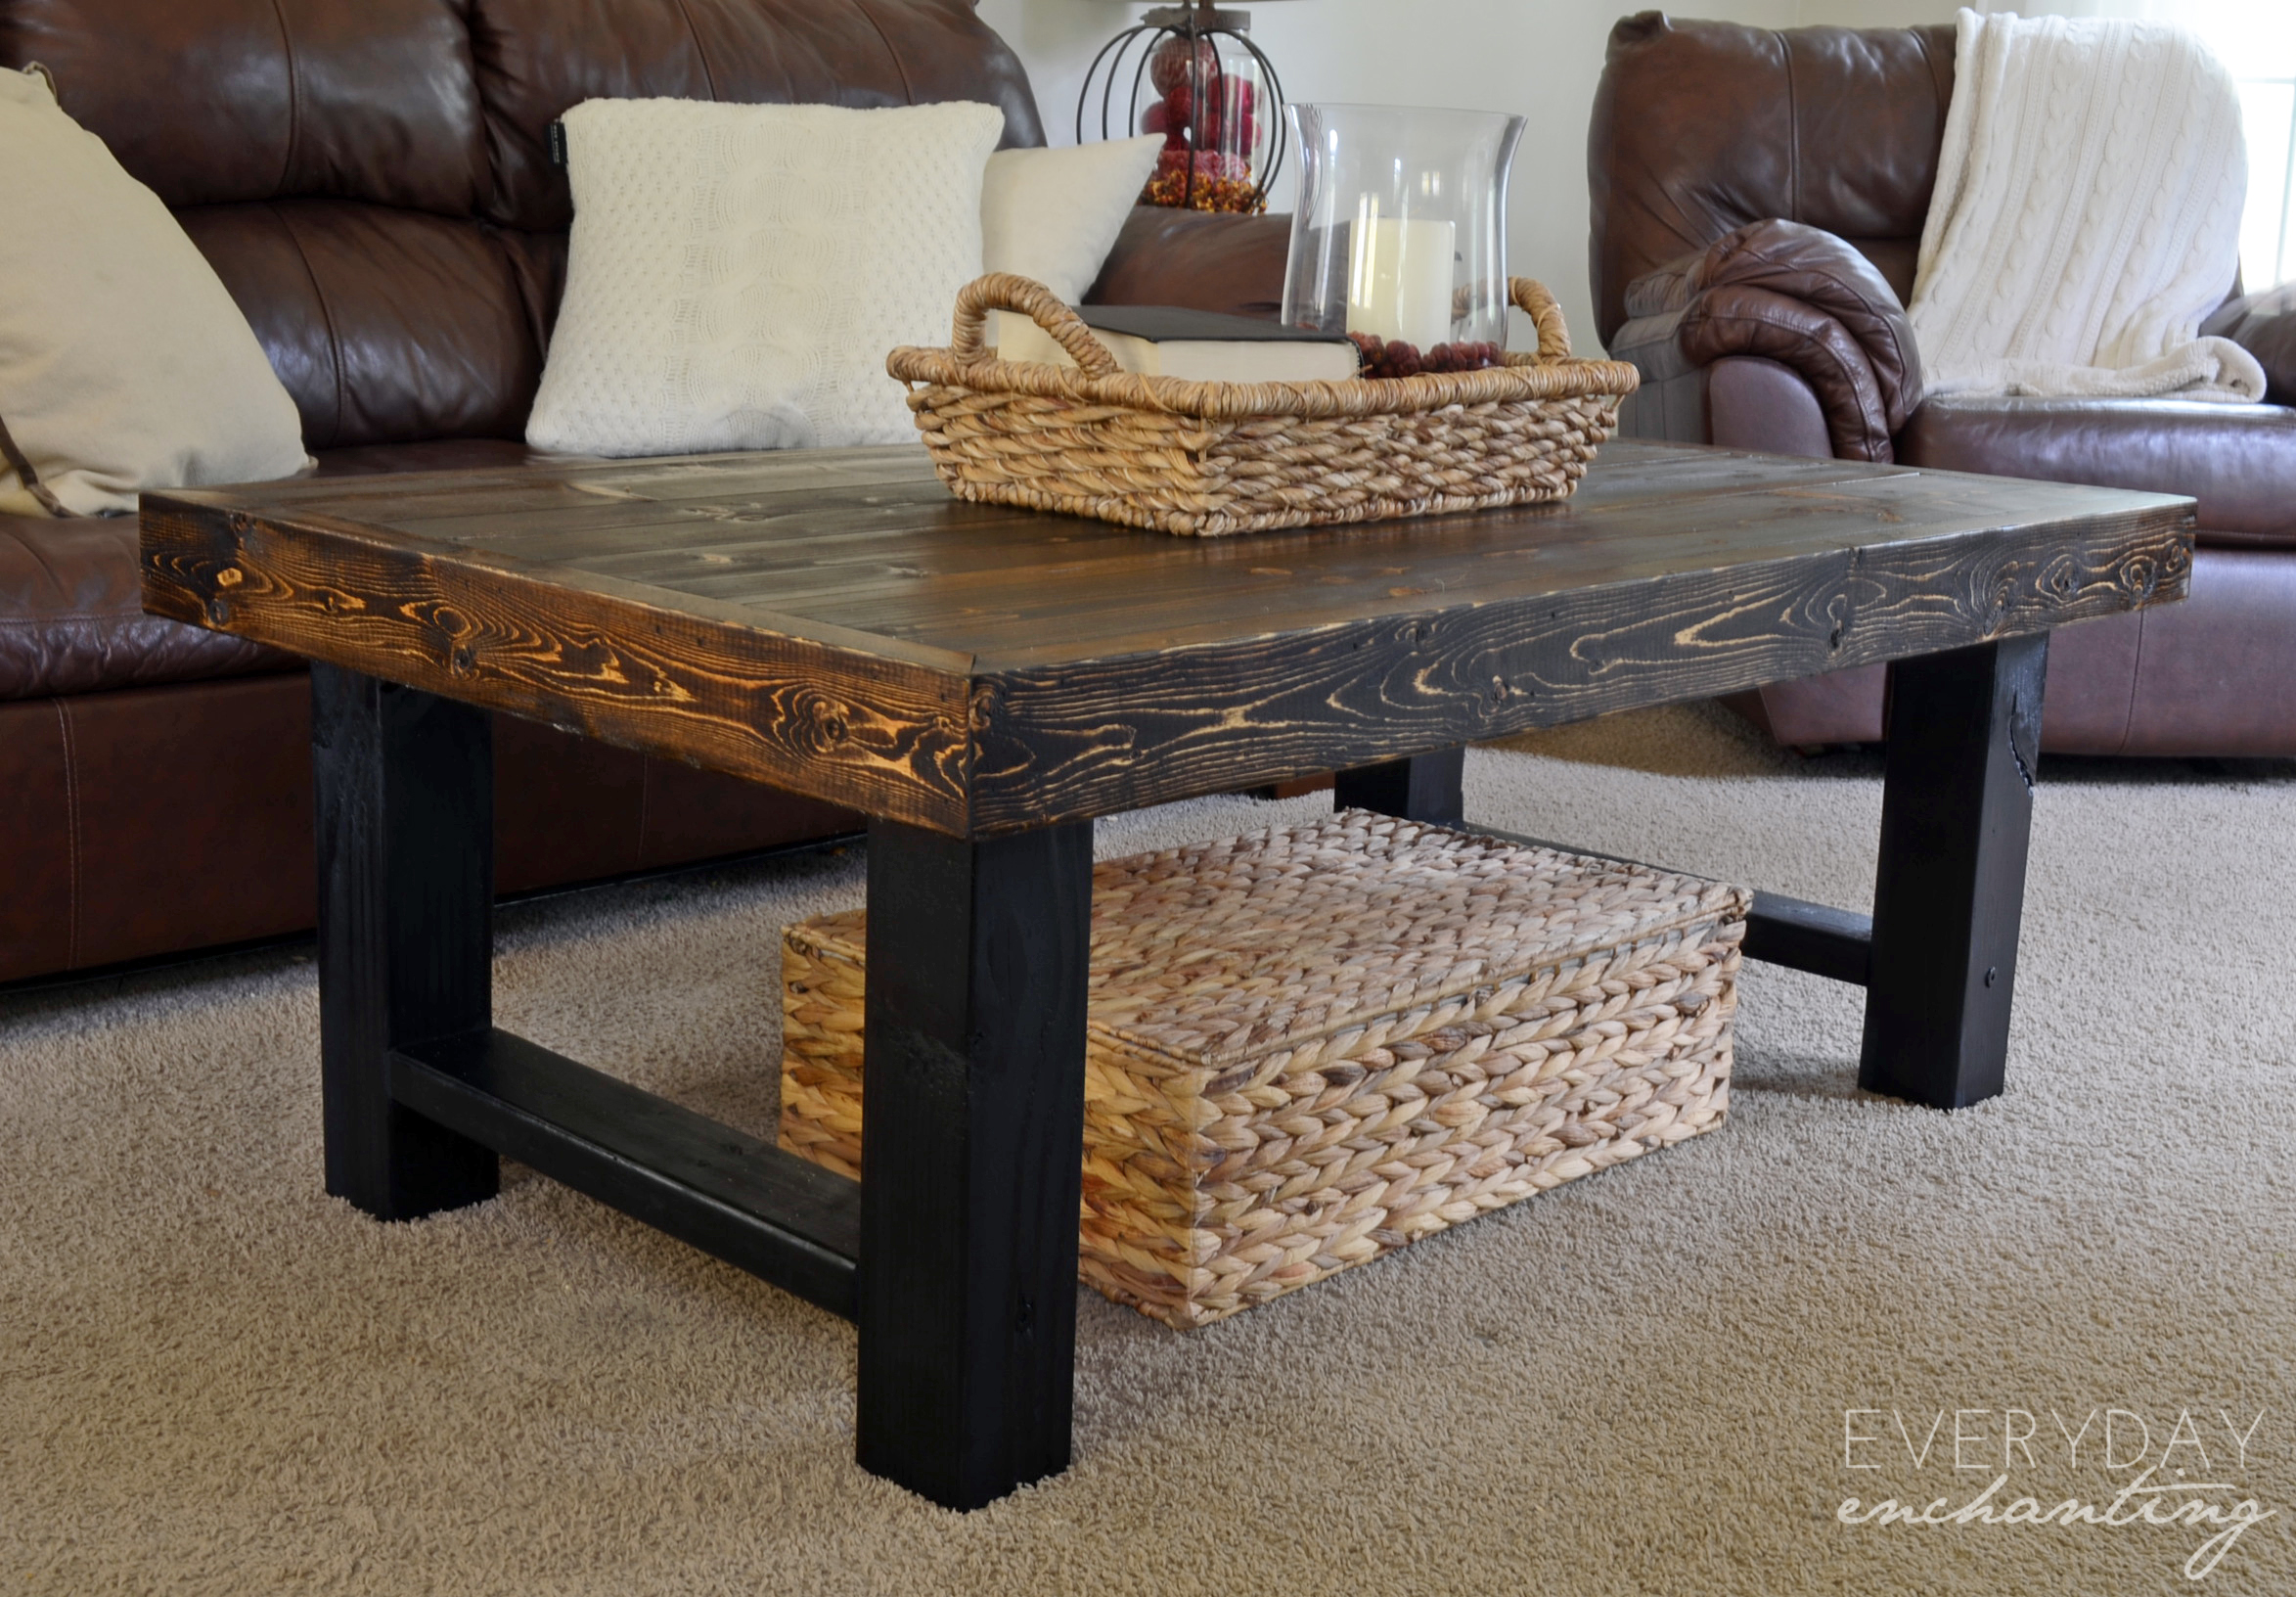 DIY Simple Coffee Table   Learn how to build a DIY Simple Coffee Table by  Everyday. Remodelaholic   DIY Simple Wood Slab Coffee Table